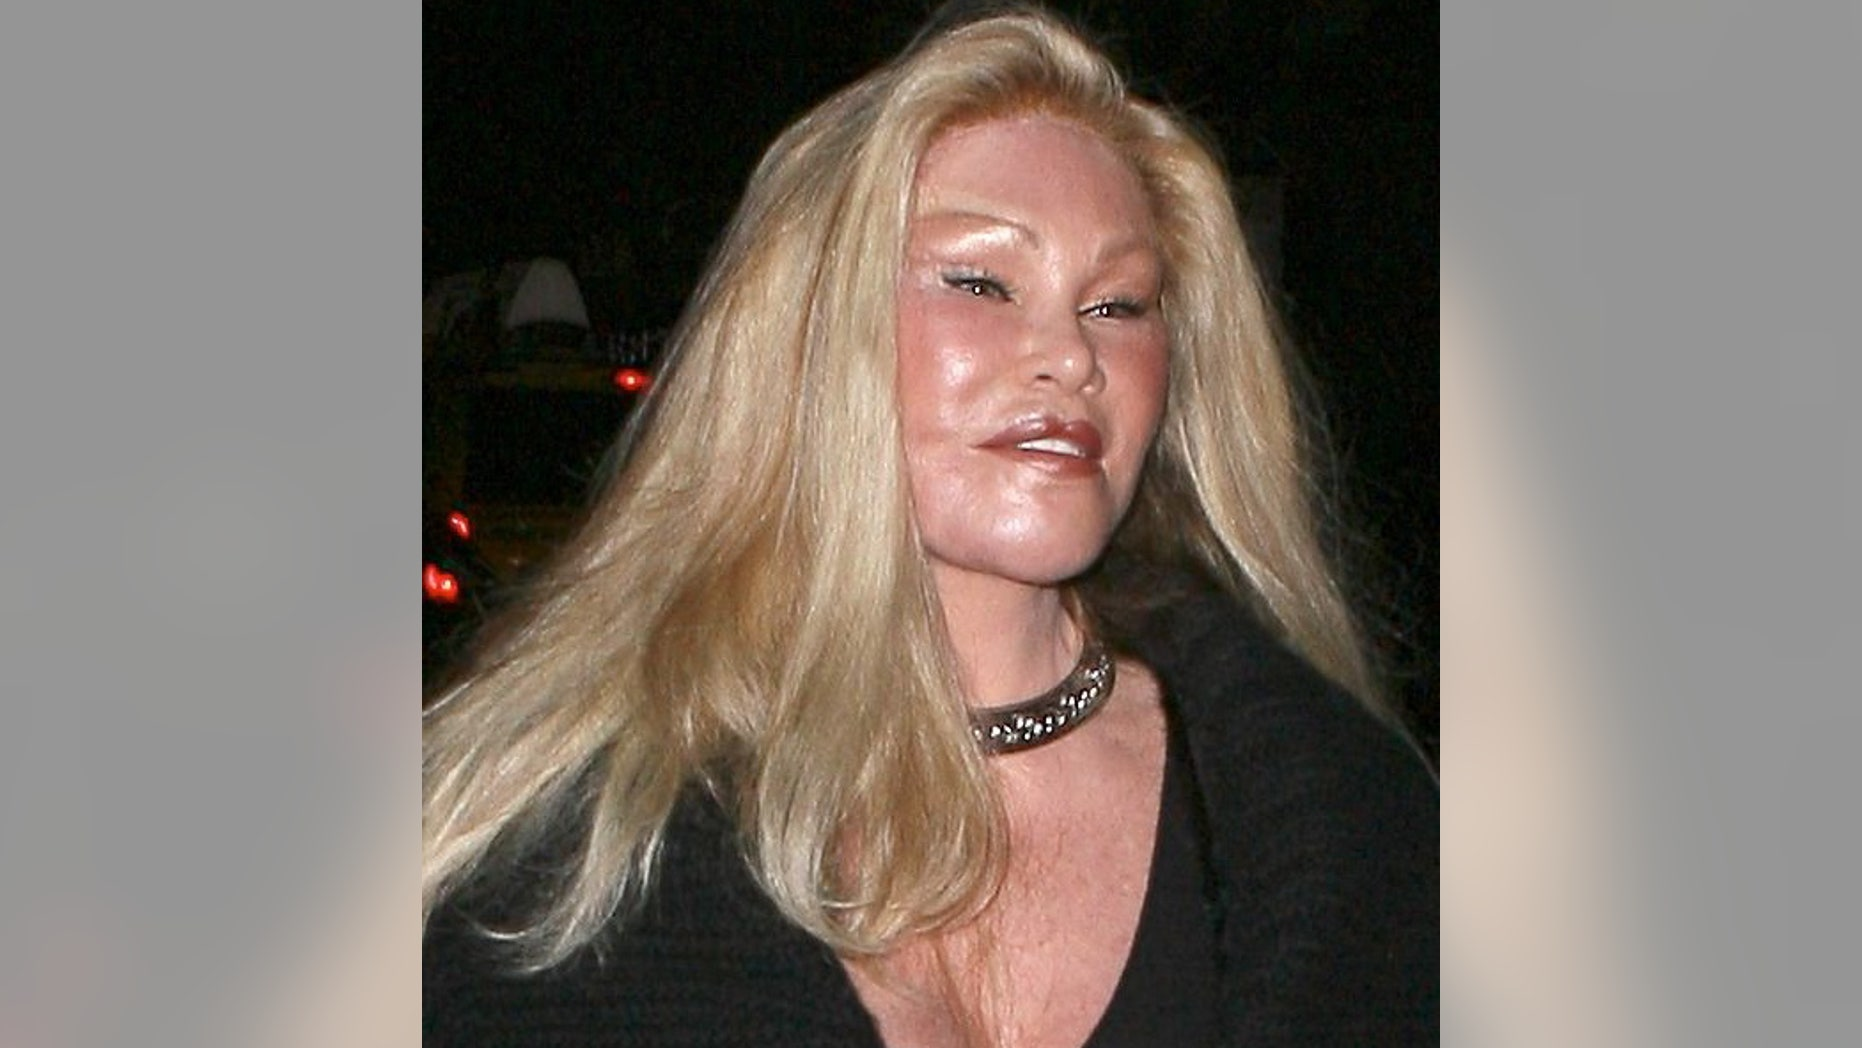 """This New York socialite is known for leading an extravagant lifestyle-- including spending huge sums of money on countless plastic surgeries. Sadly, Jocelyn probably wishes she could buy her old face back.<a target=""""_blank"""" href=""""http://www.x17online.com/gallery/view_gallery.php?gallery=Wildestein091409_X17"""">See more photos of Jocelyn at X17online.com.</a>"""